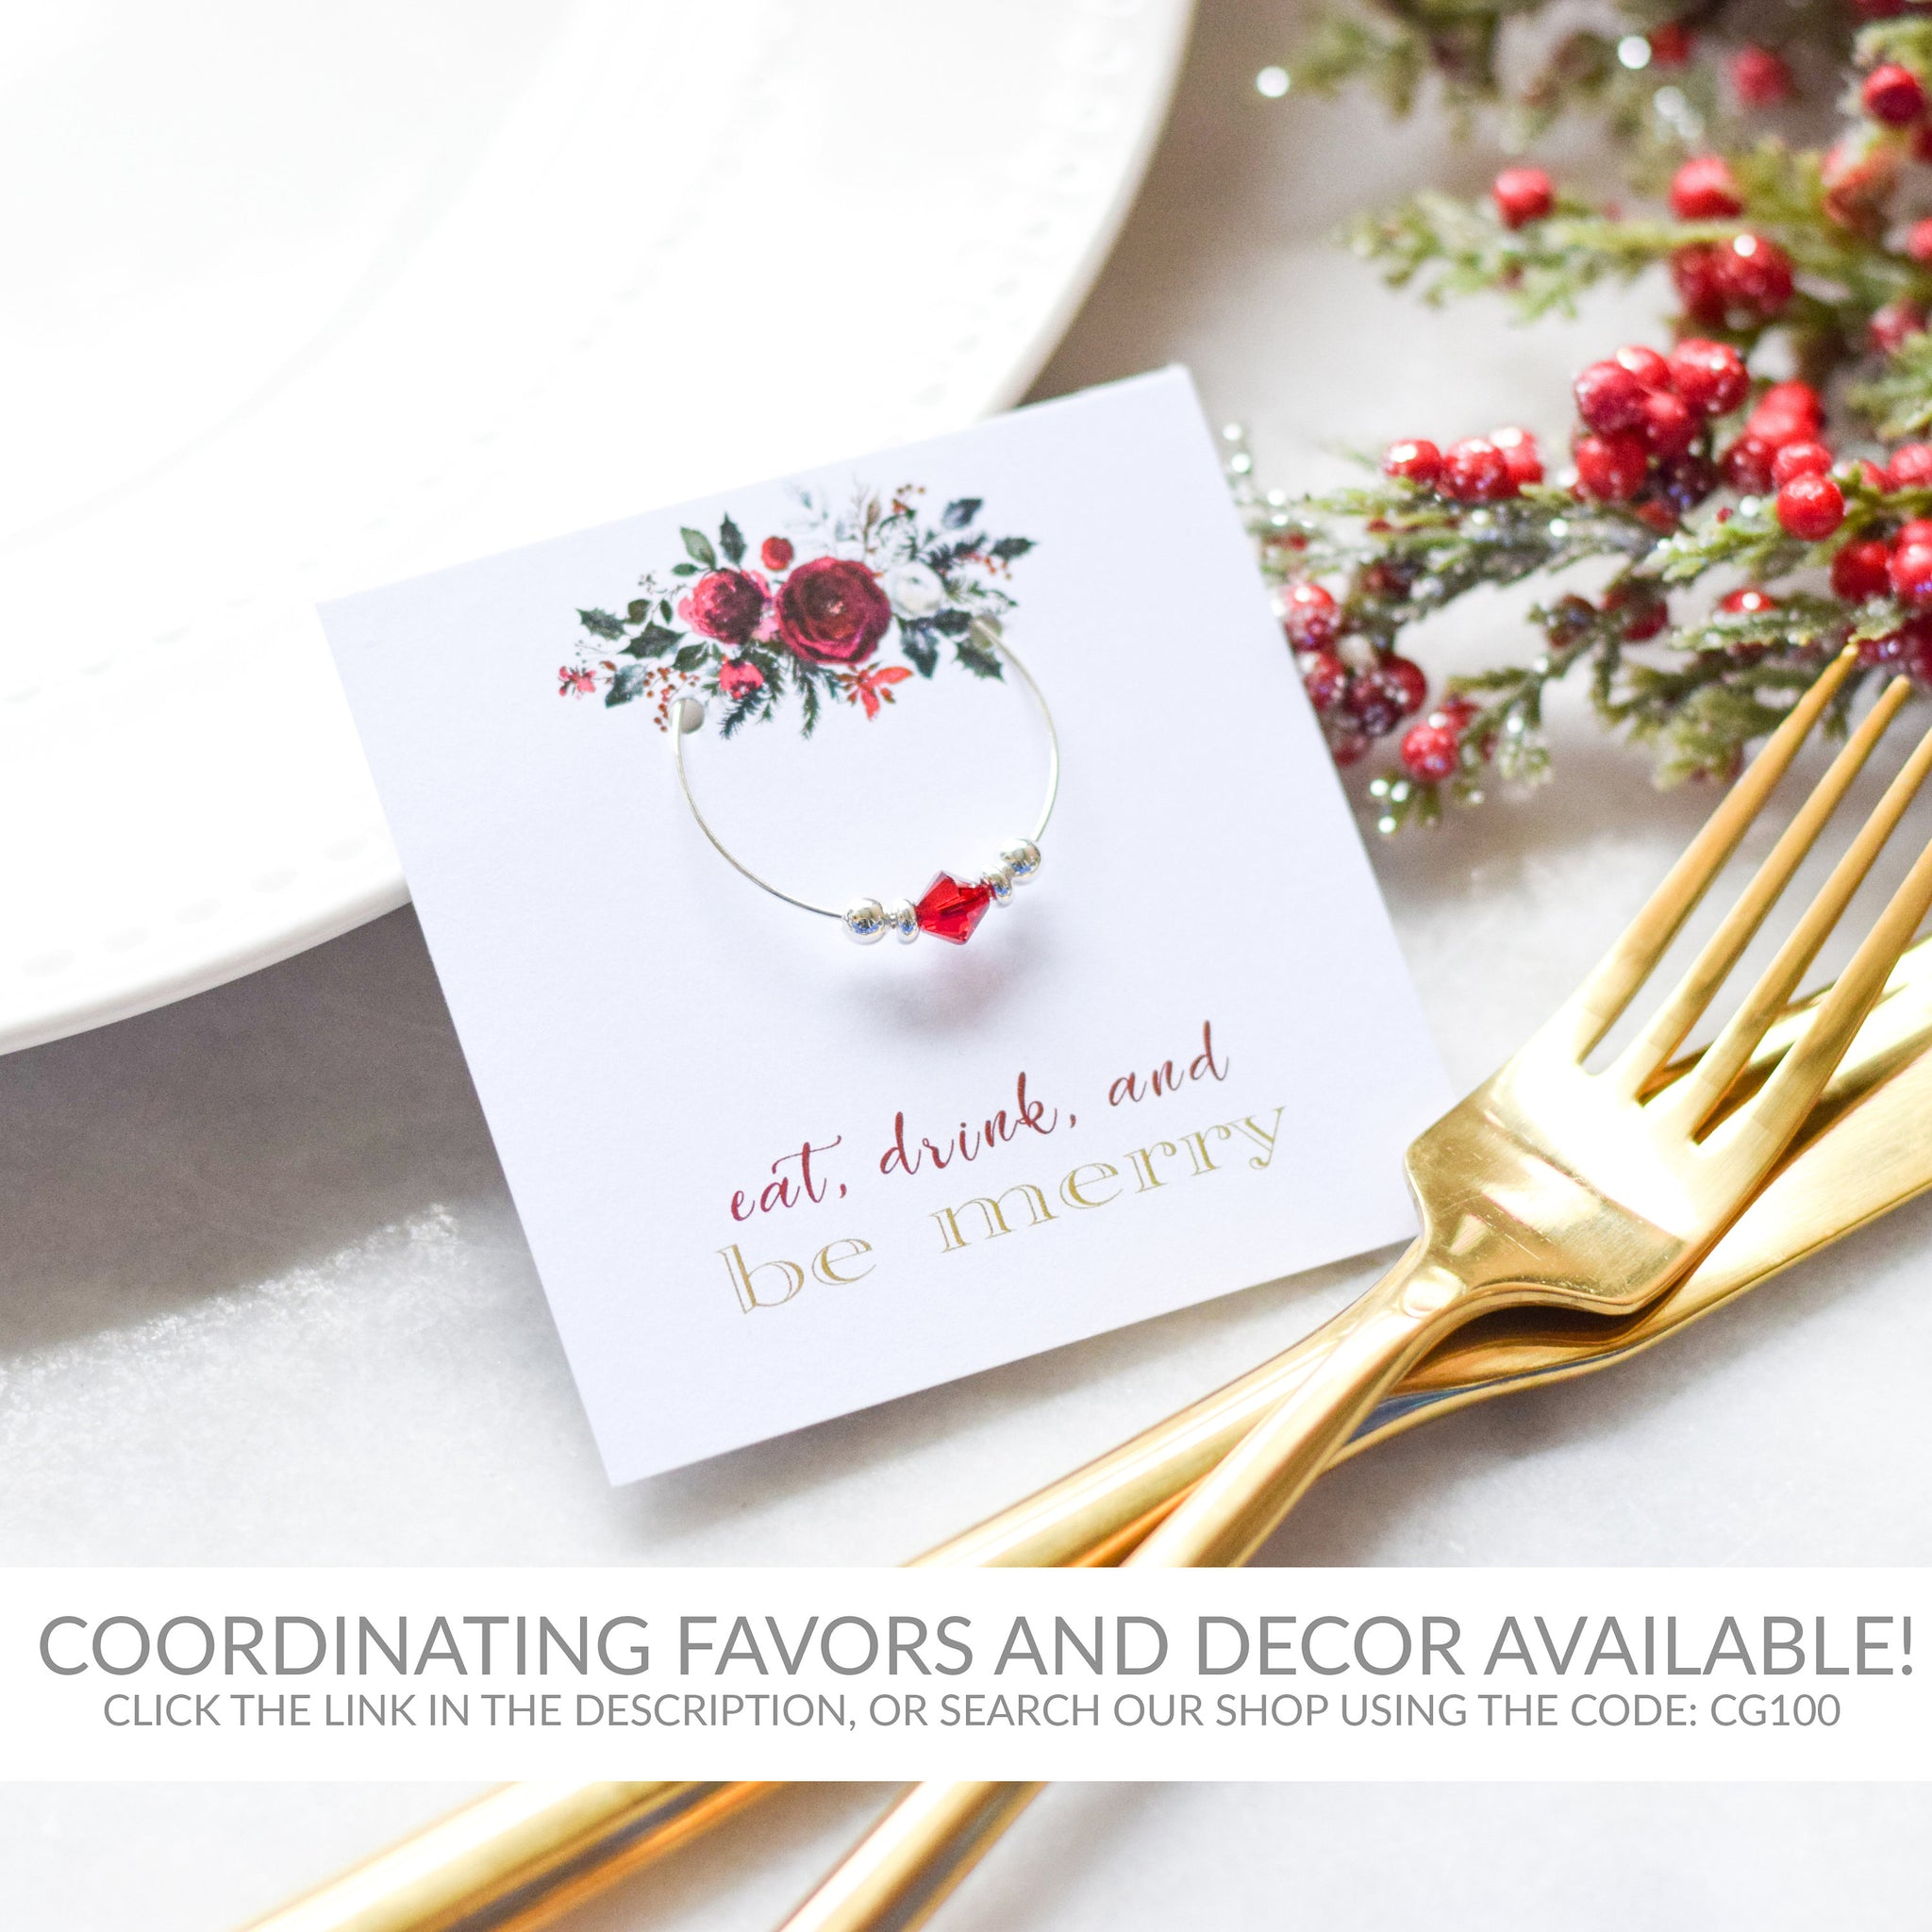 Christmas Party Favors Sign Printable, Holiday Party Printable Decorations, Christmas Bridal Shower Favor Sign, INSTANT DOWNLOAD - CG100